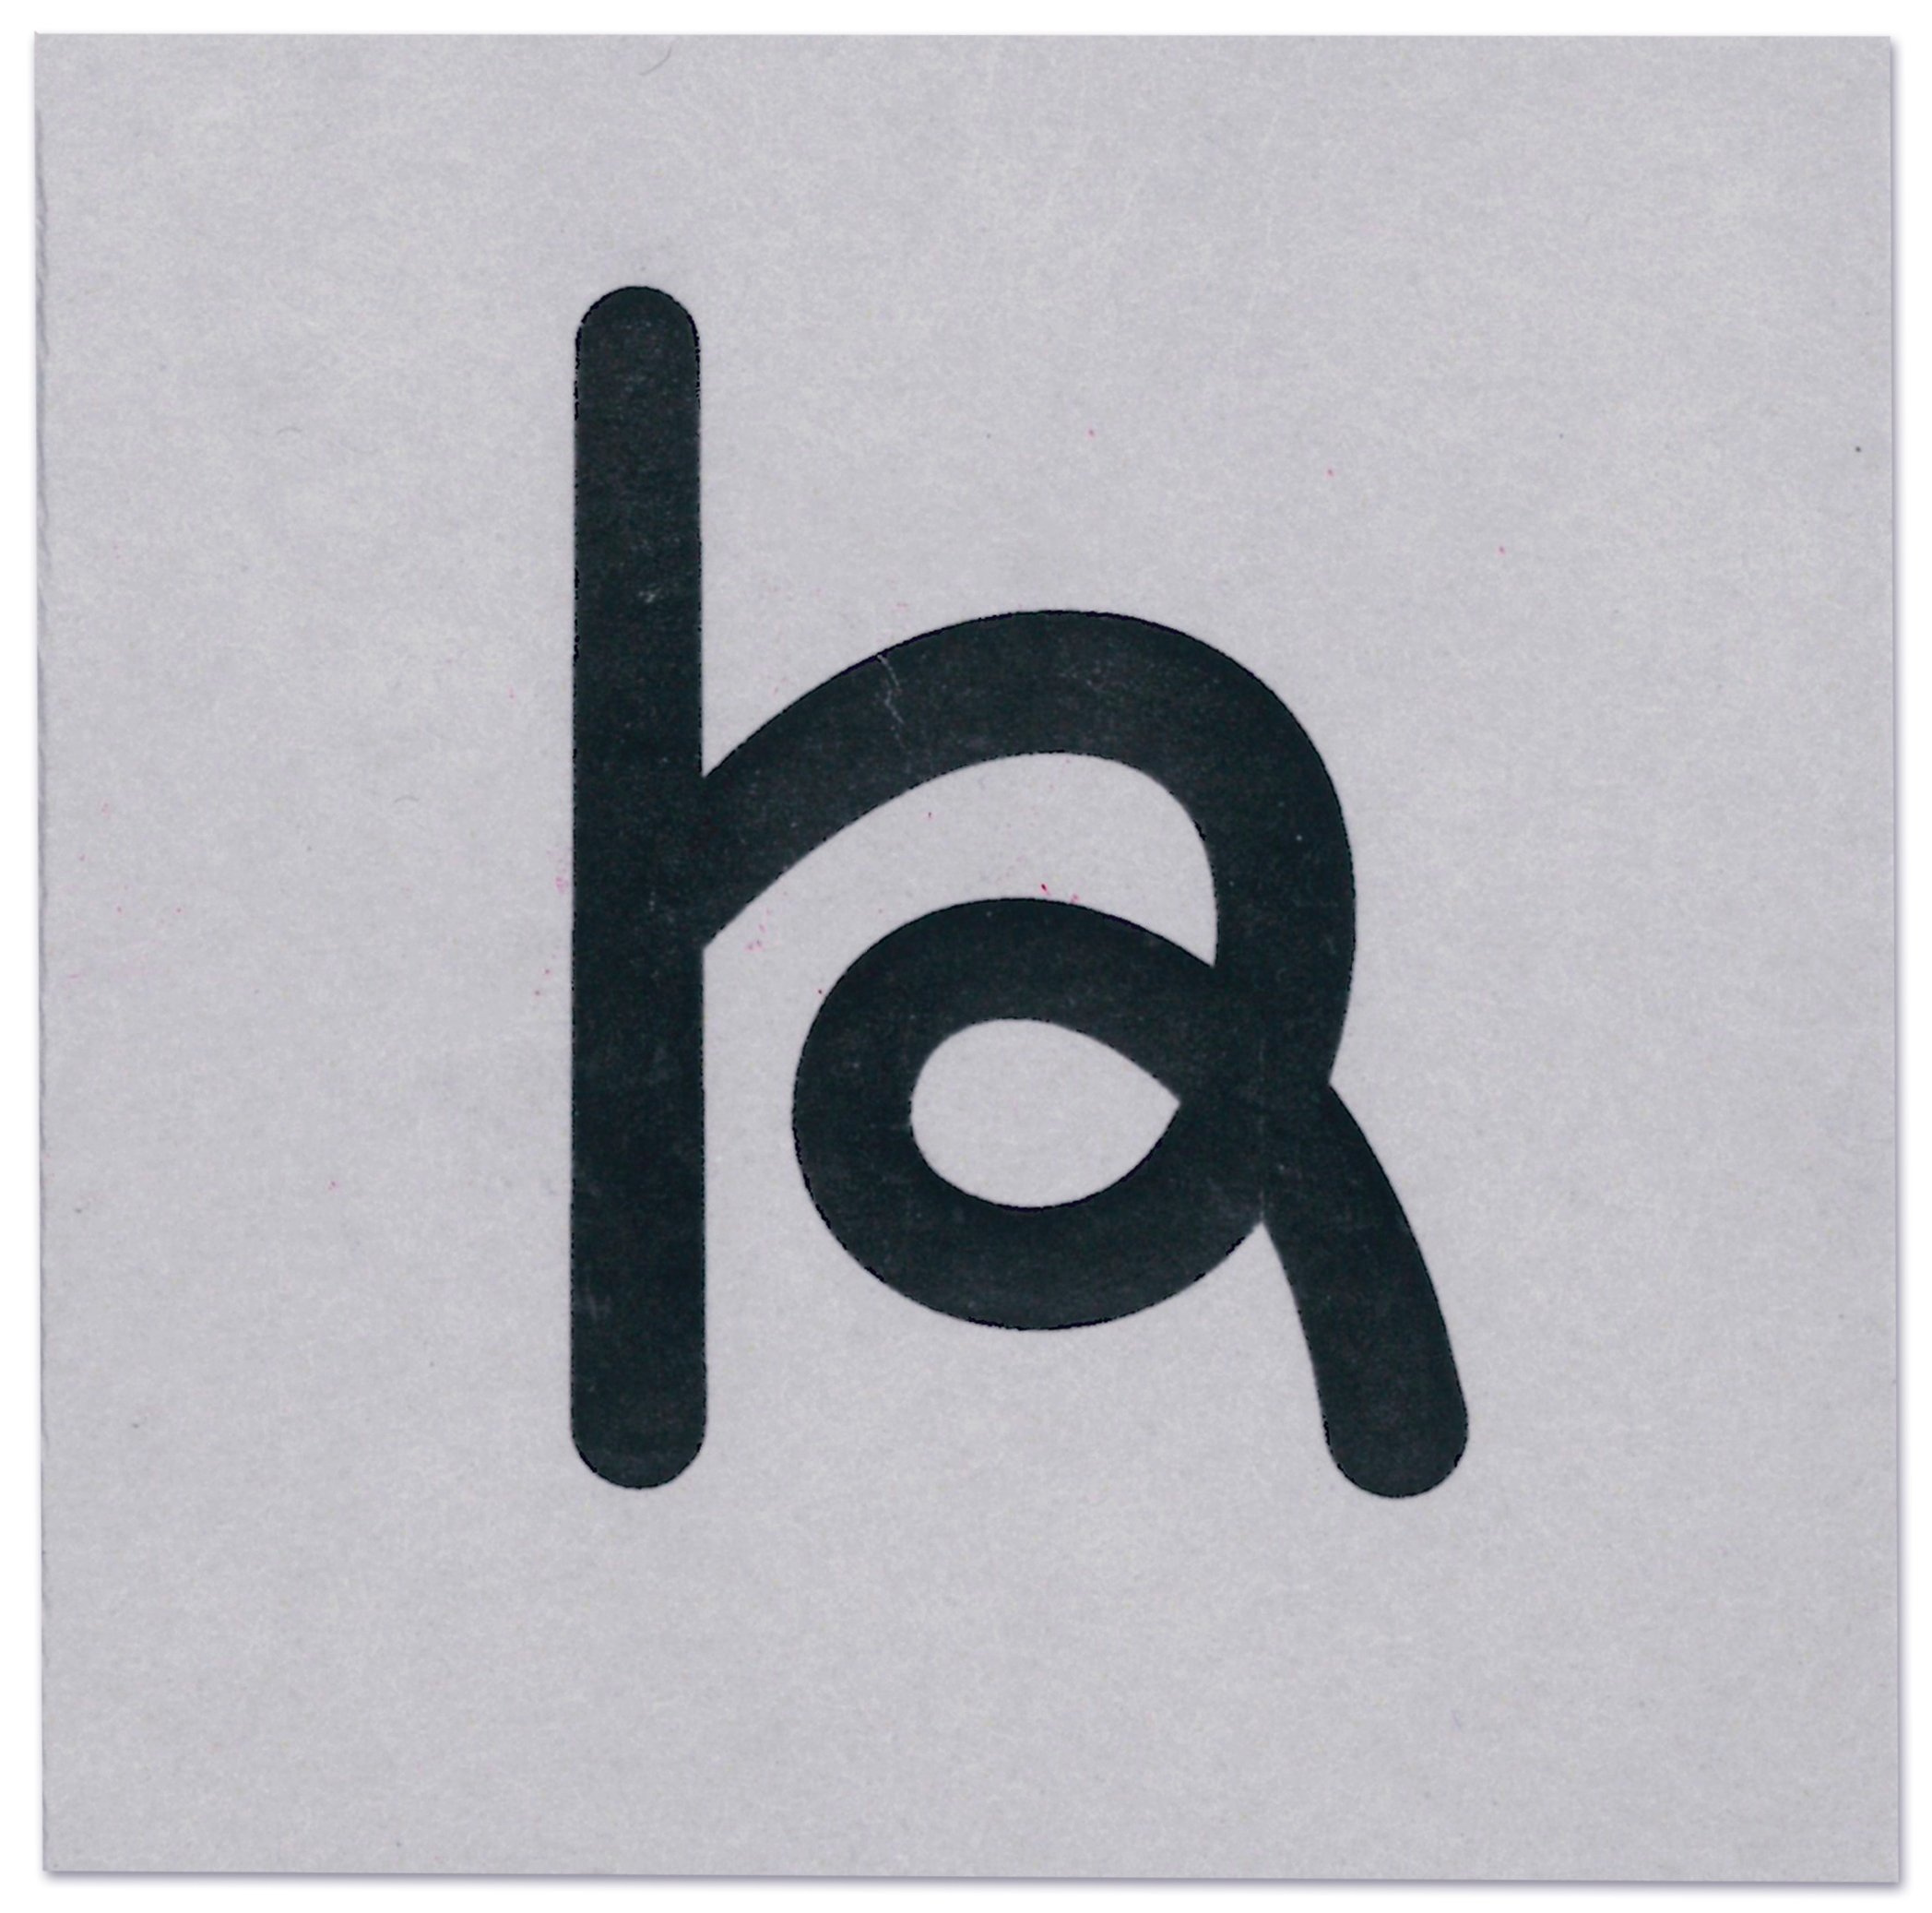 Squiggly lowercase letter k